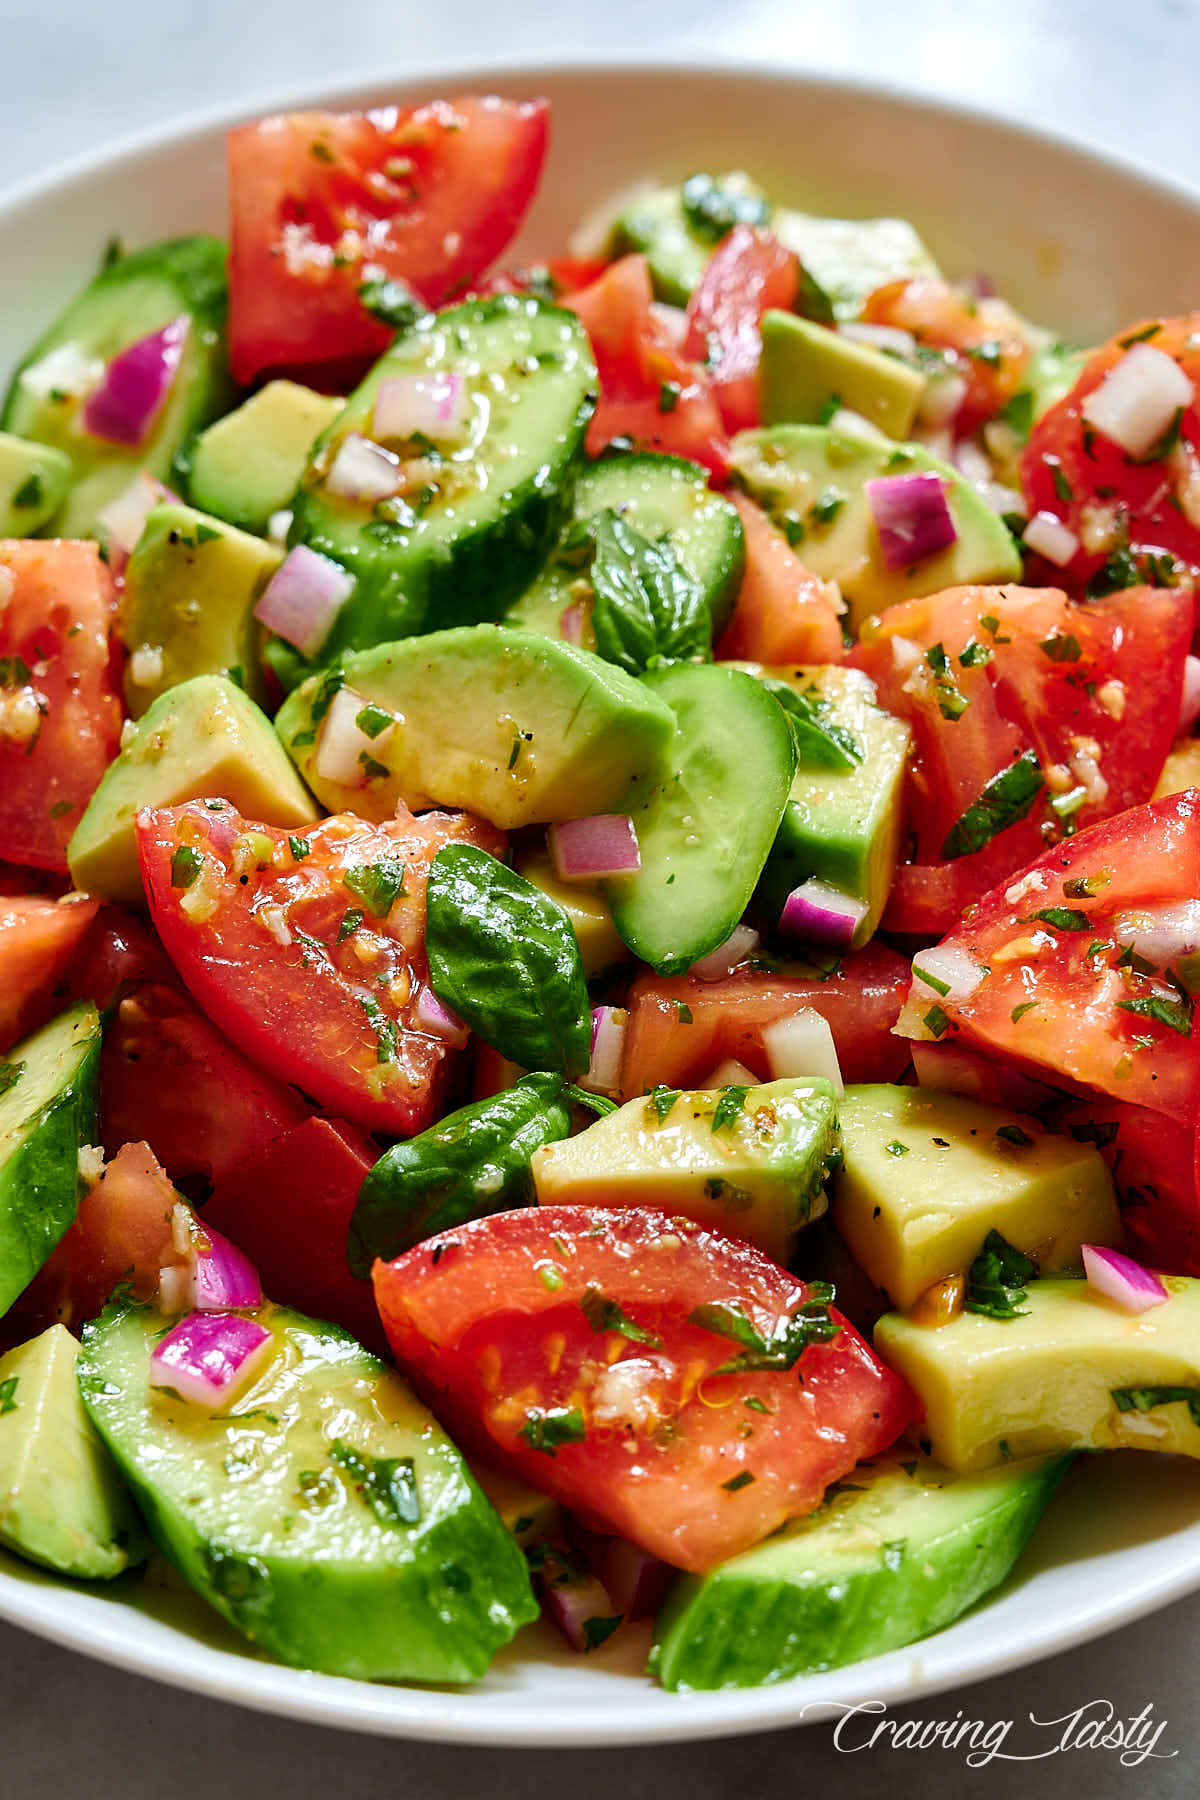 Close up view of tomato, cucumber and avocado salad.